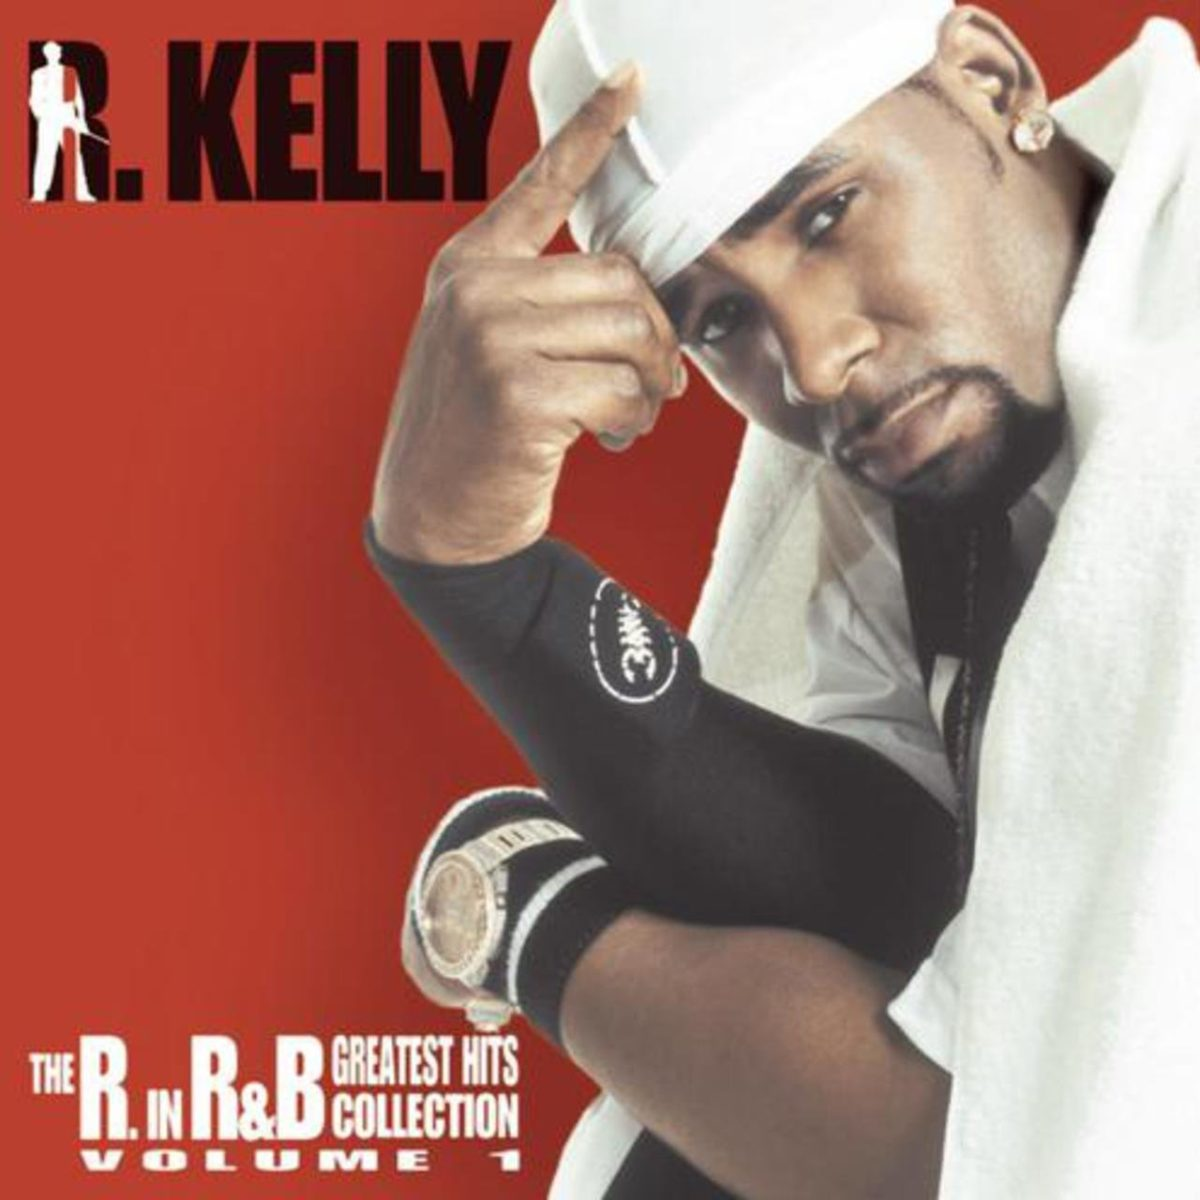 R. Kelly - The R. In R and B Collection Volume 1 (Cover)